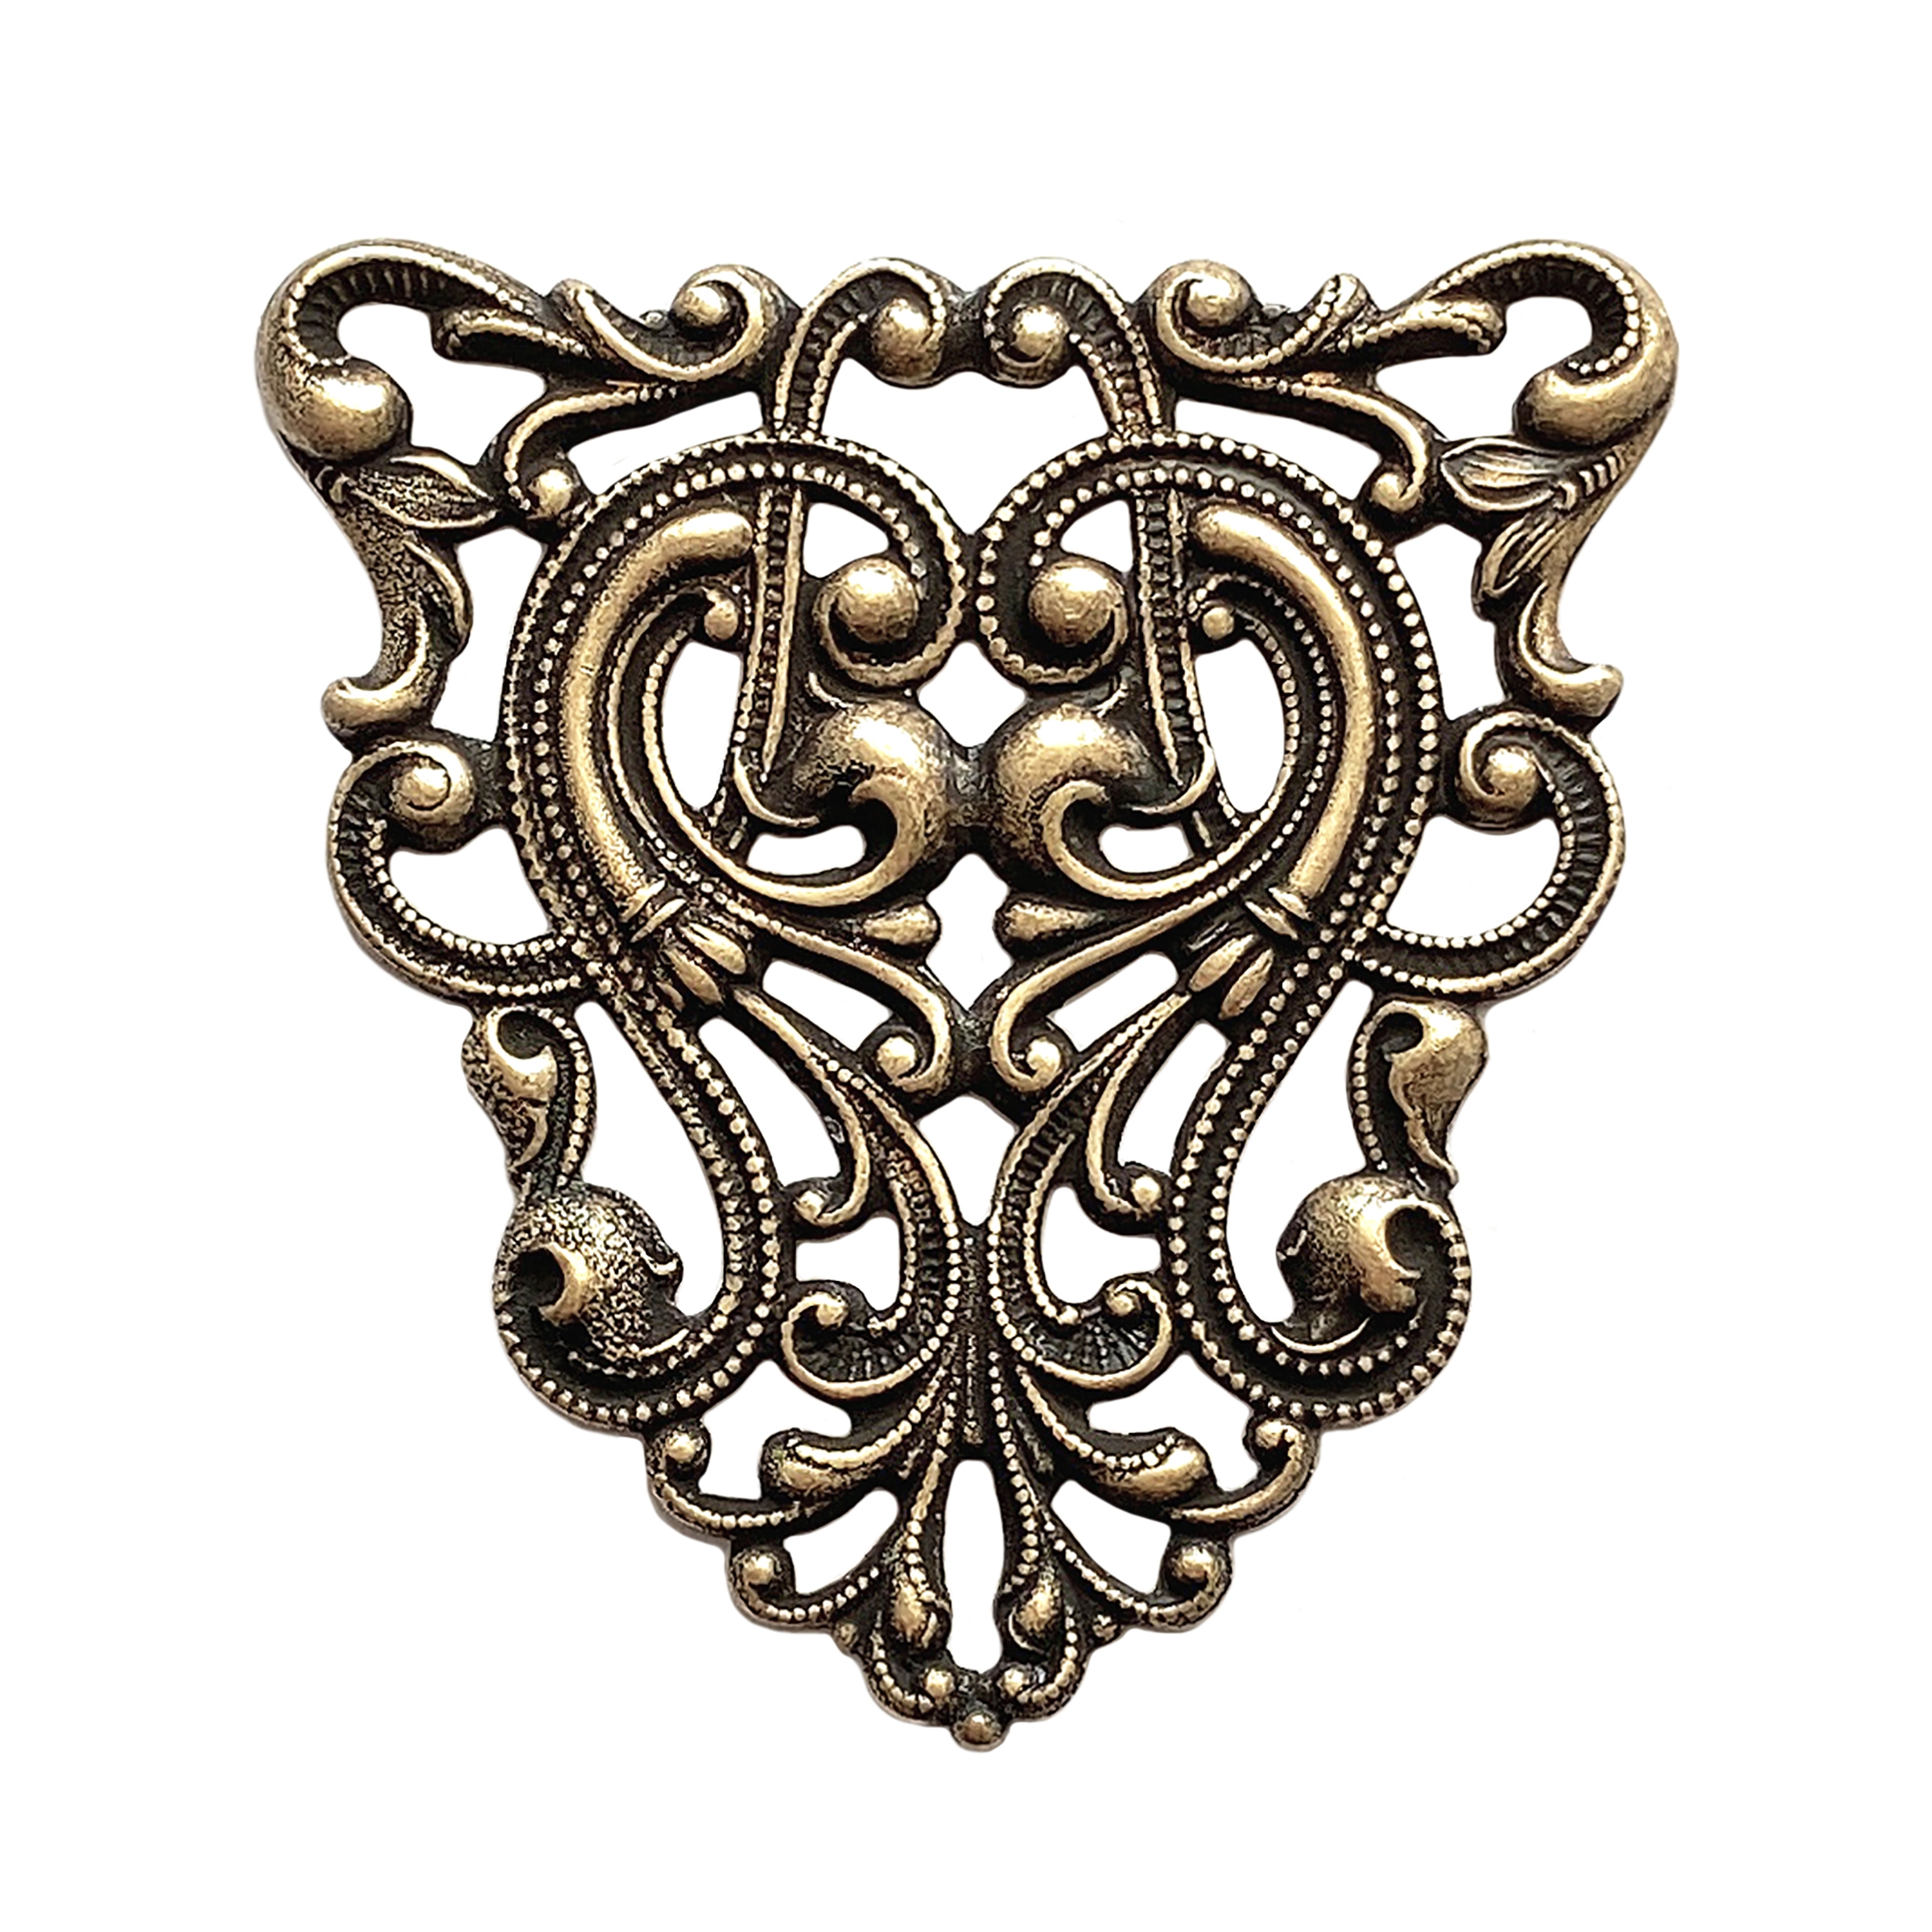 Art nouveau filigree, brass ox, antique brass, filigree, 40 x 37mm, brass stamping, connector, finding, us made, nickel free, jewelry making, jewelry supplies, vintage supplies, plated brass, brass filigree, design, jewelry findings, 02214